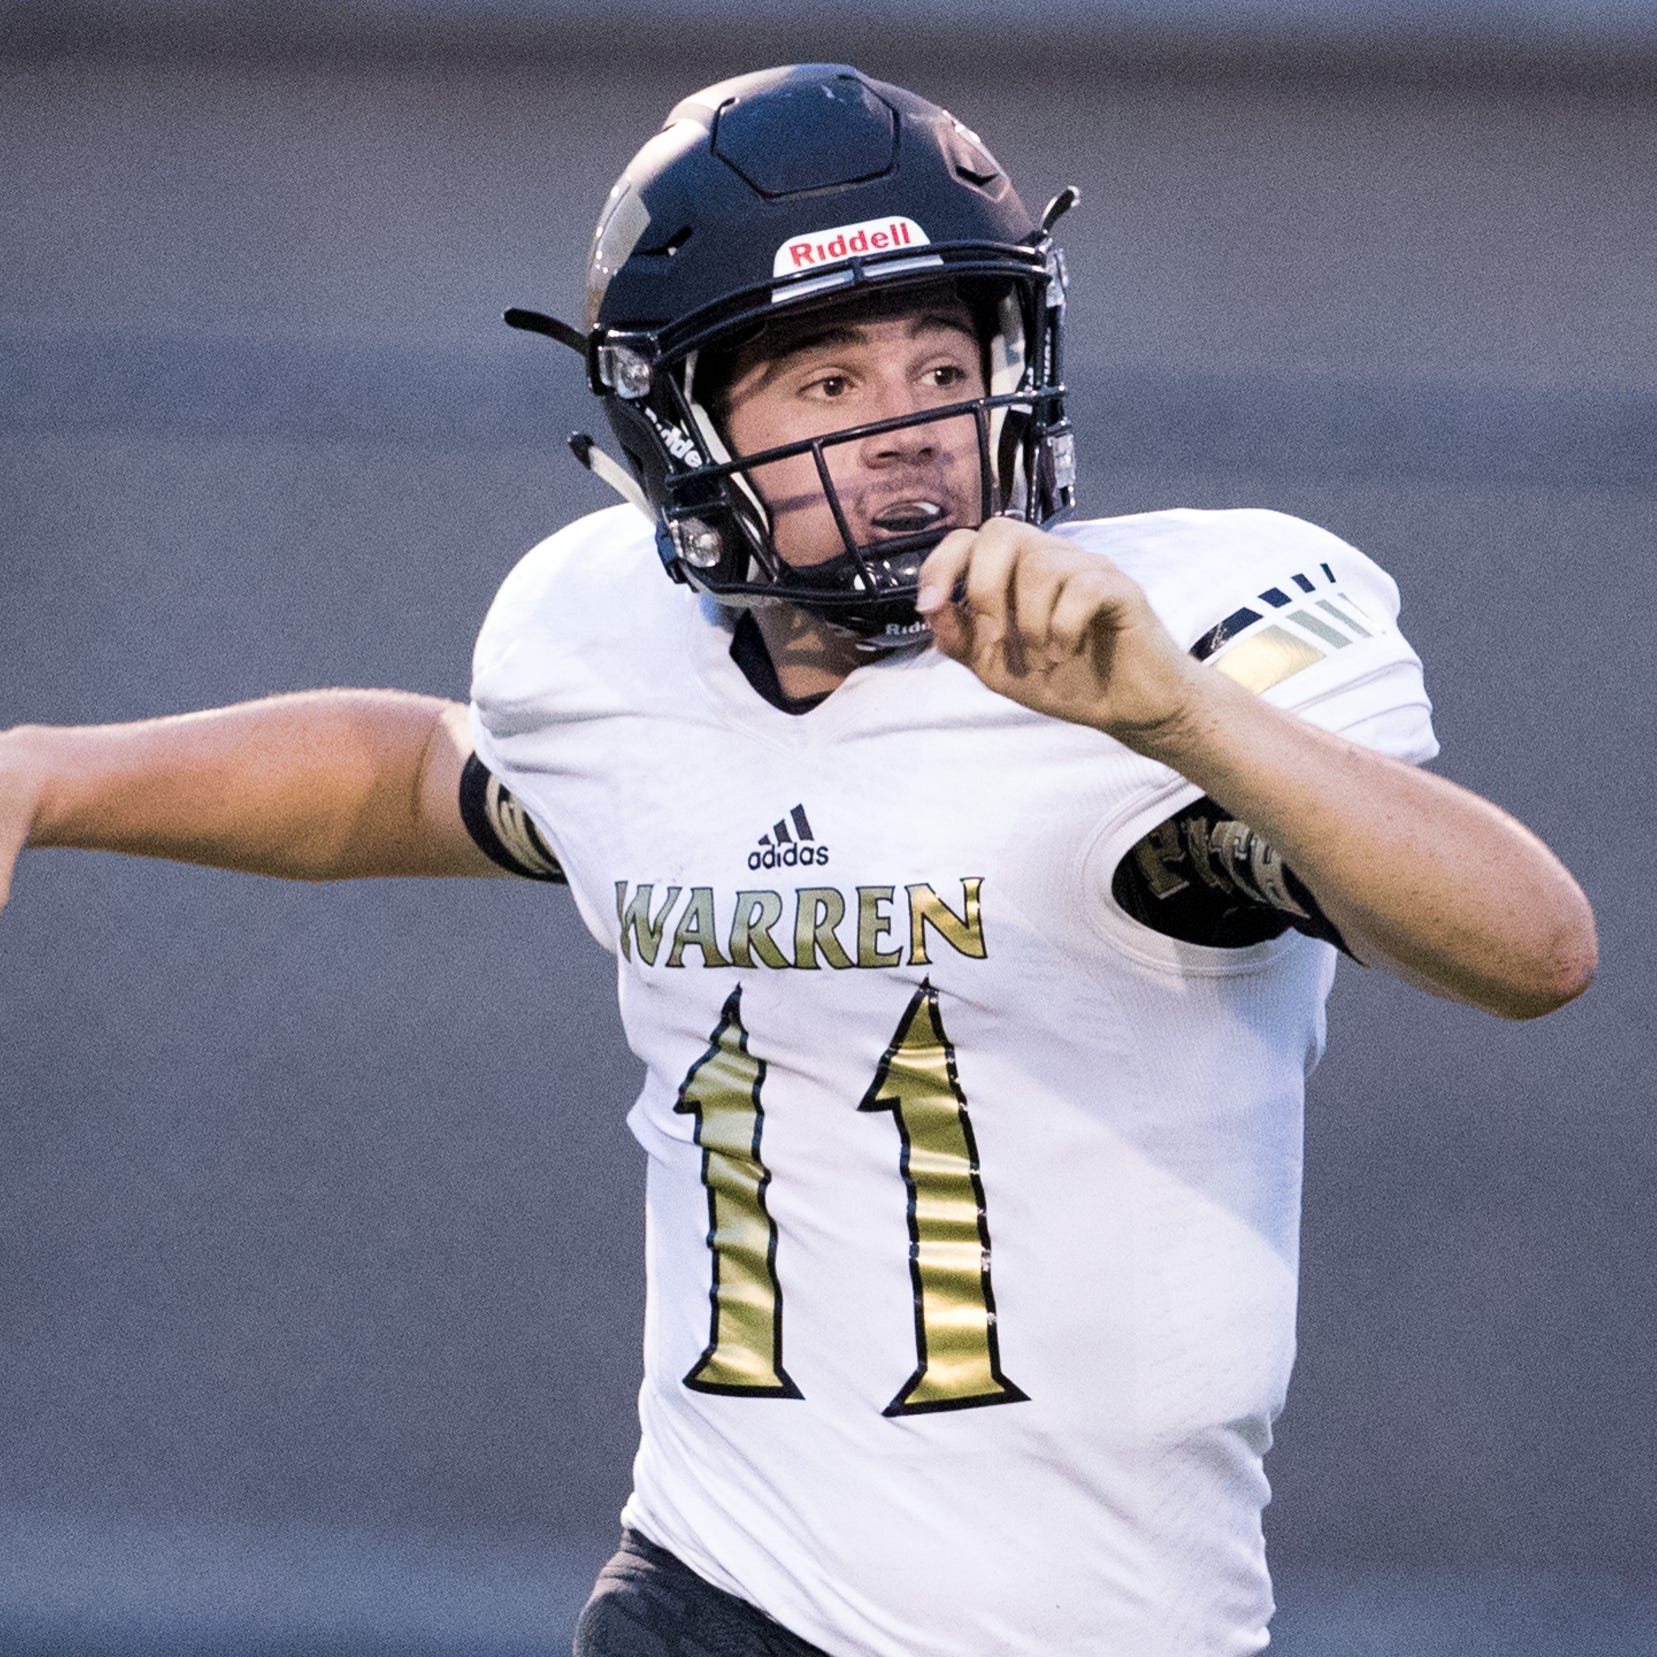 Vote for IndyStar's Male and Female Athletes of the Week (Sept. 24-29)